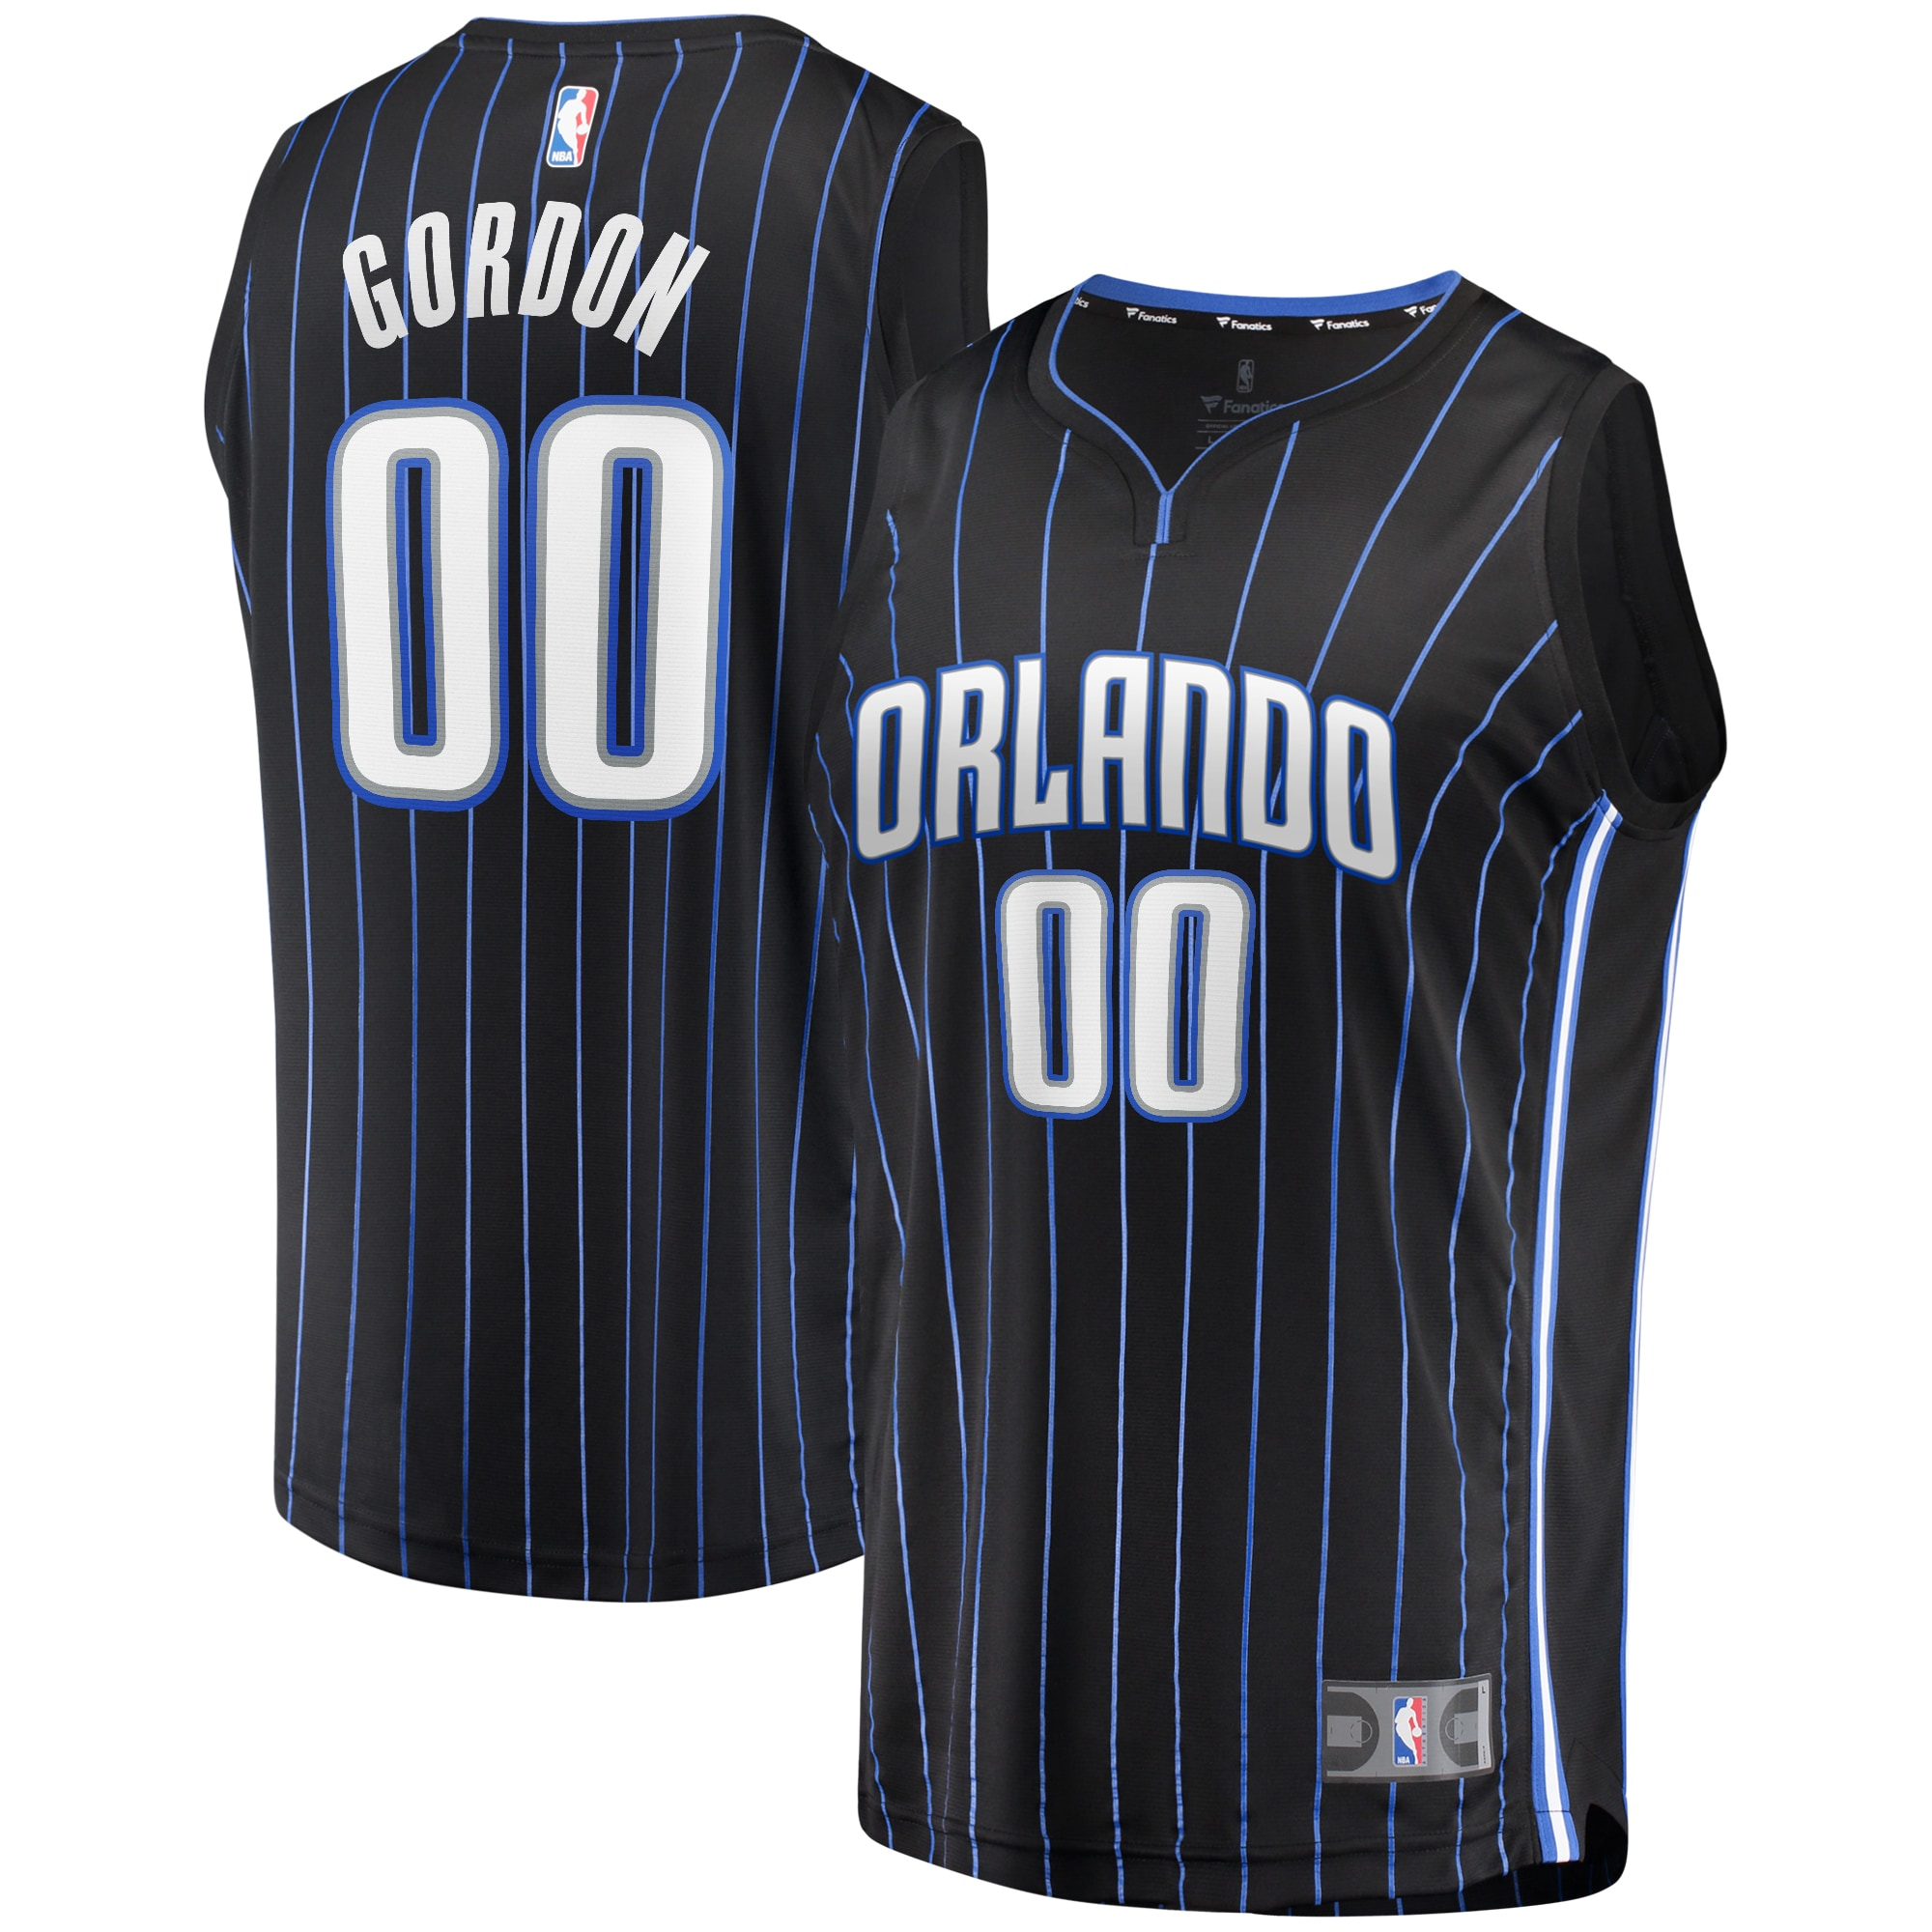 Aaron Gordon Orlando Magic Fanatics Branded Fast Break Replica Player Jersey - Black - Icon Edition